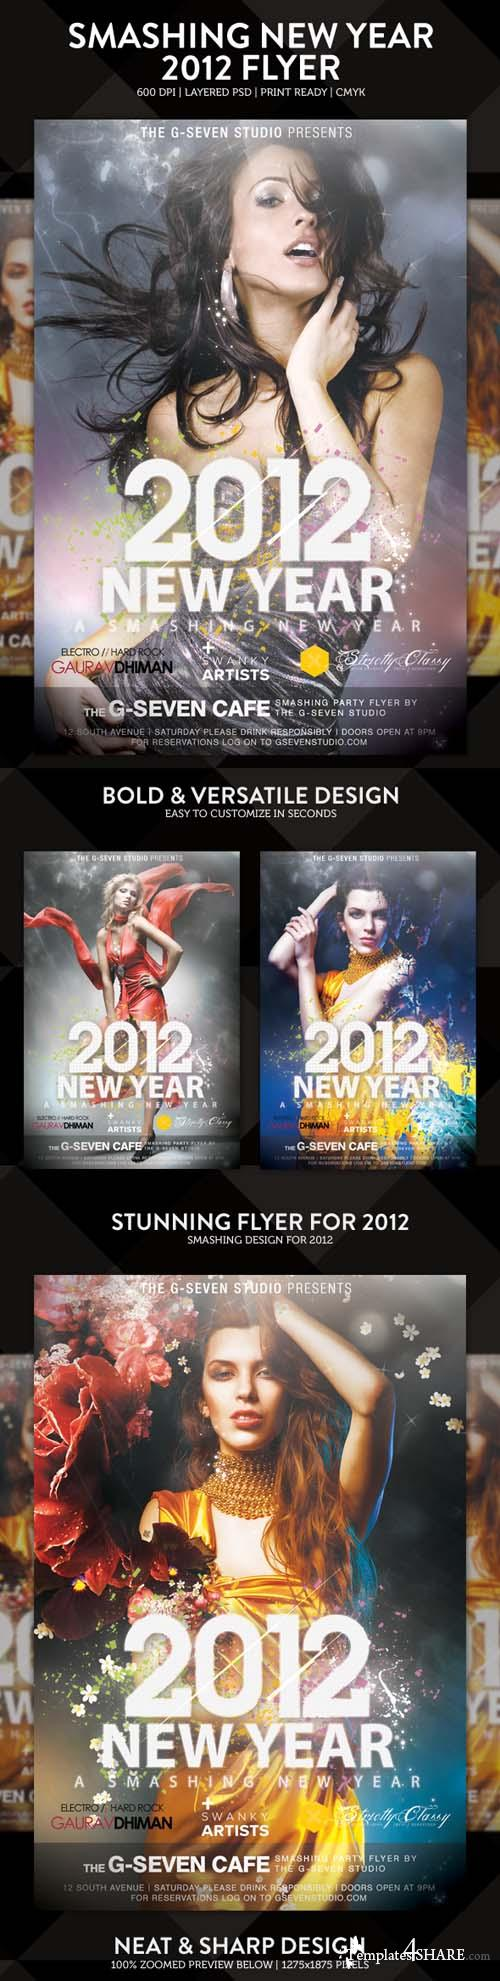 Smashing New Year 2012 Flyer/Poster - PSD Template